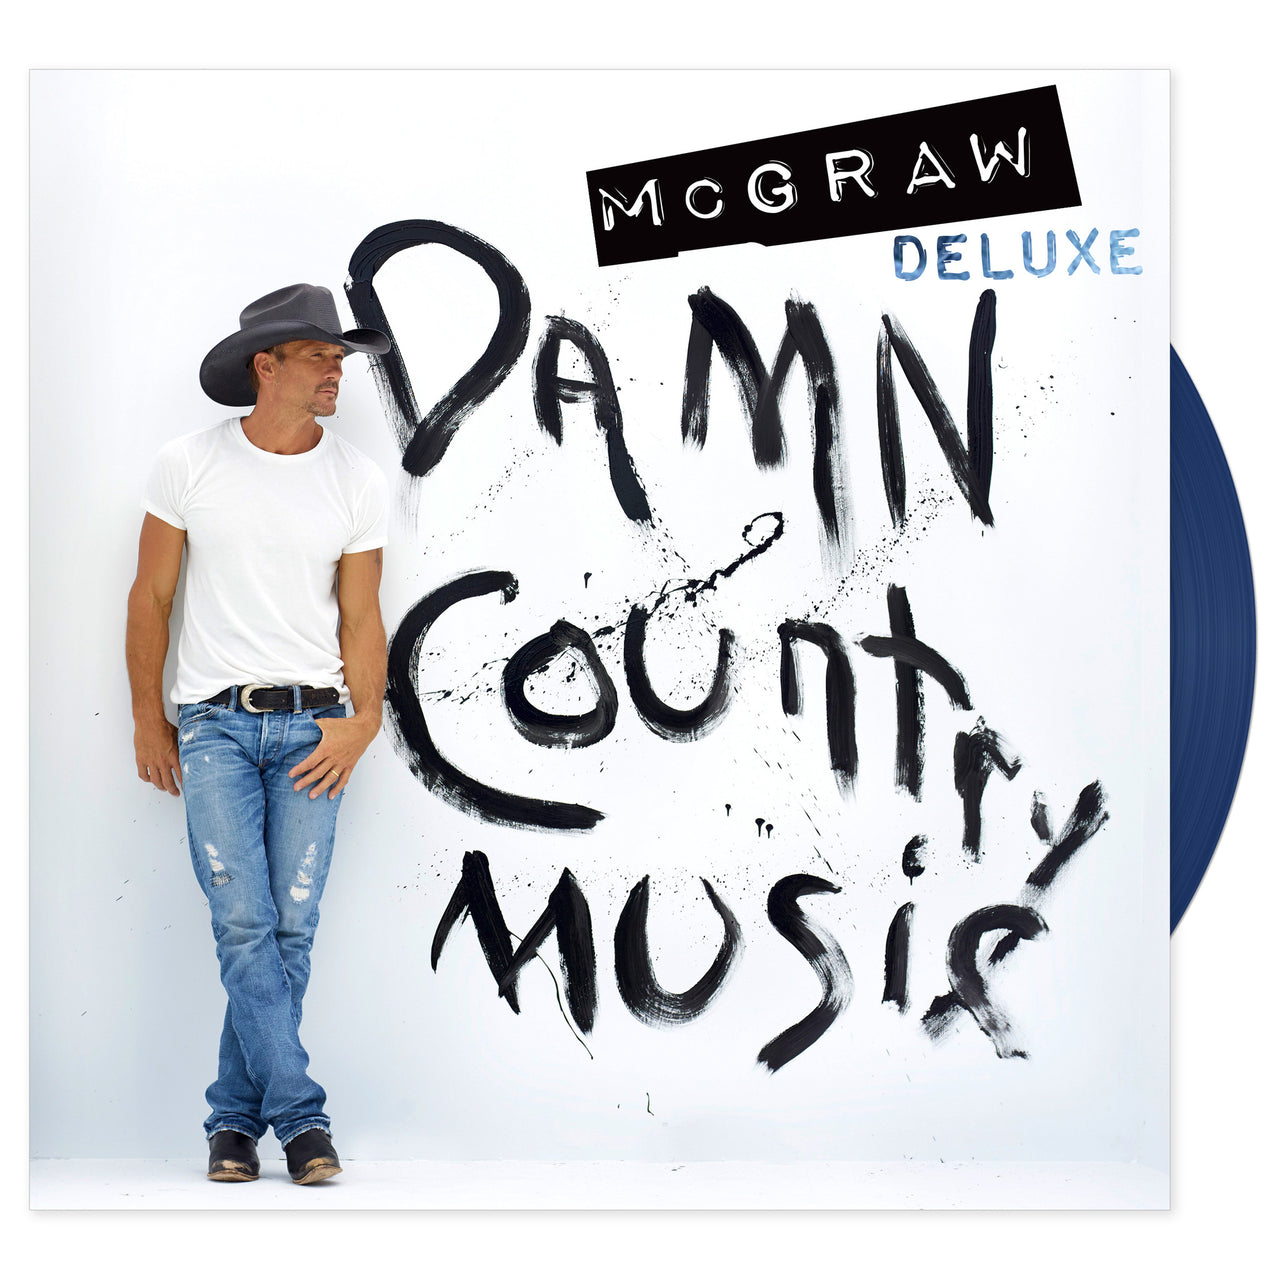 Tim McGraw 'Damn Country Music' Deluxe Vinyl Record